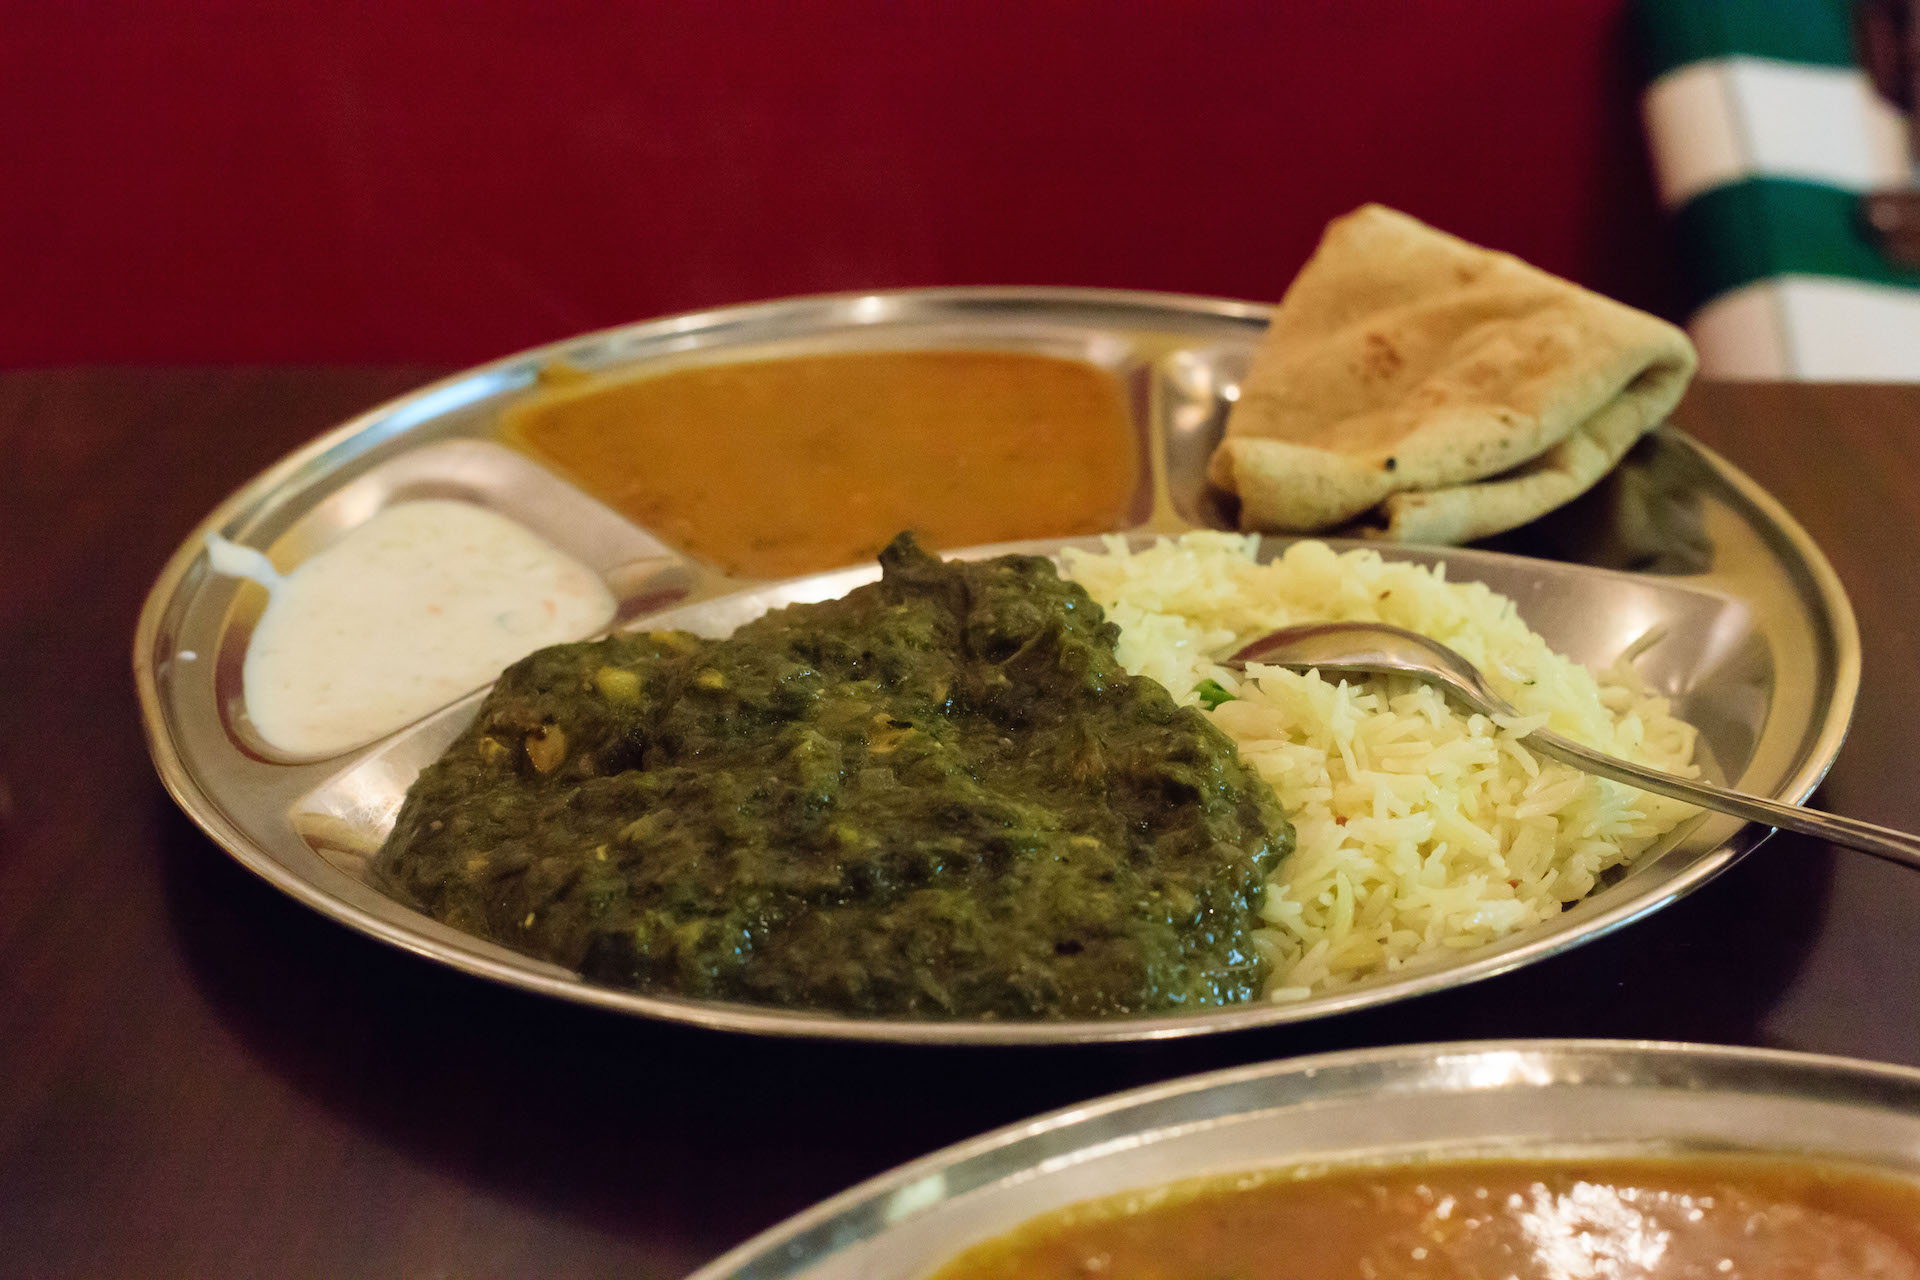 The Saag Paneer plate at Sartaj India Cafe.